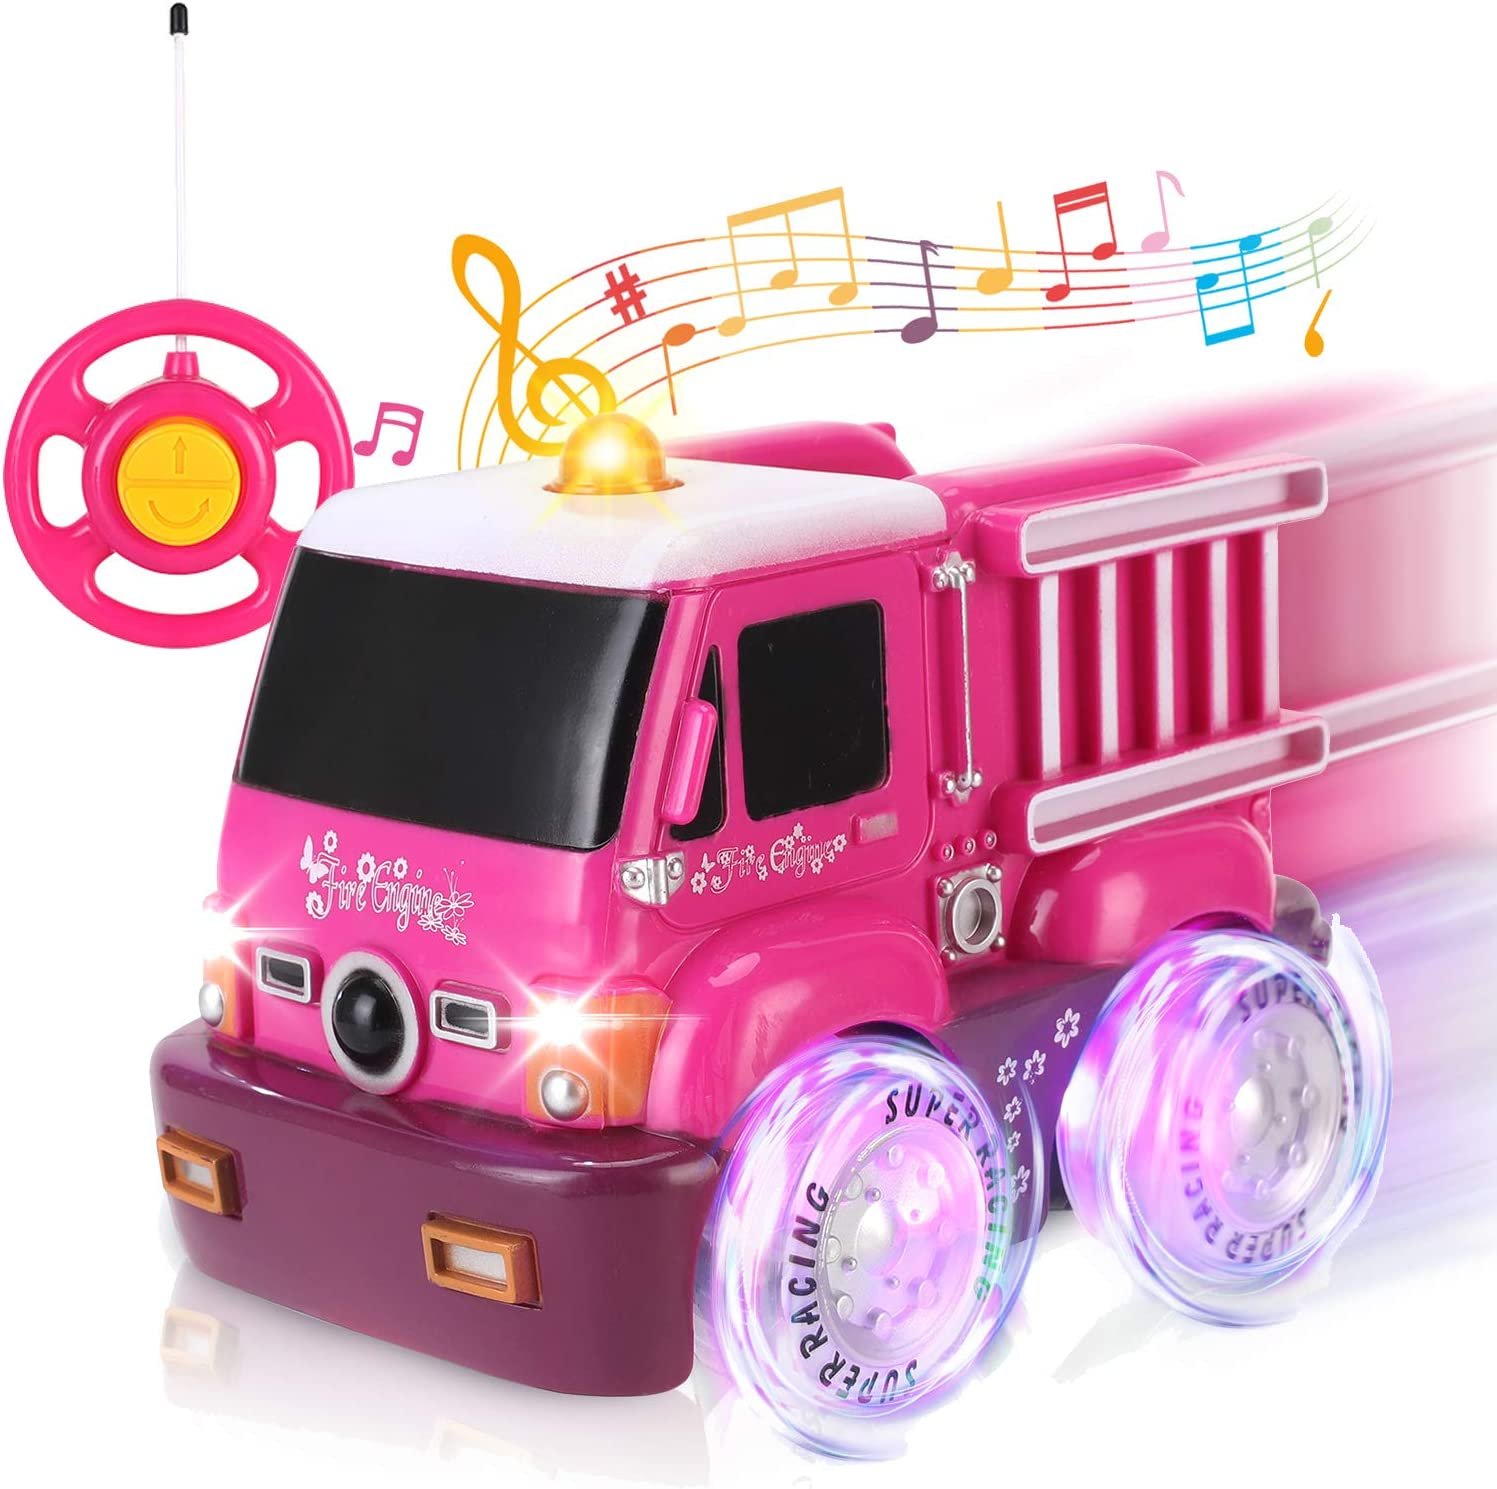 Amazon Com Liberty Imports My First Rc Car For Girls Pink Purple Remote Control 2ch Racer Vehicle For Kids Toddlers Fire Truck Toys Games